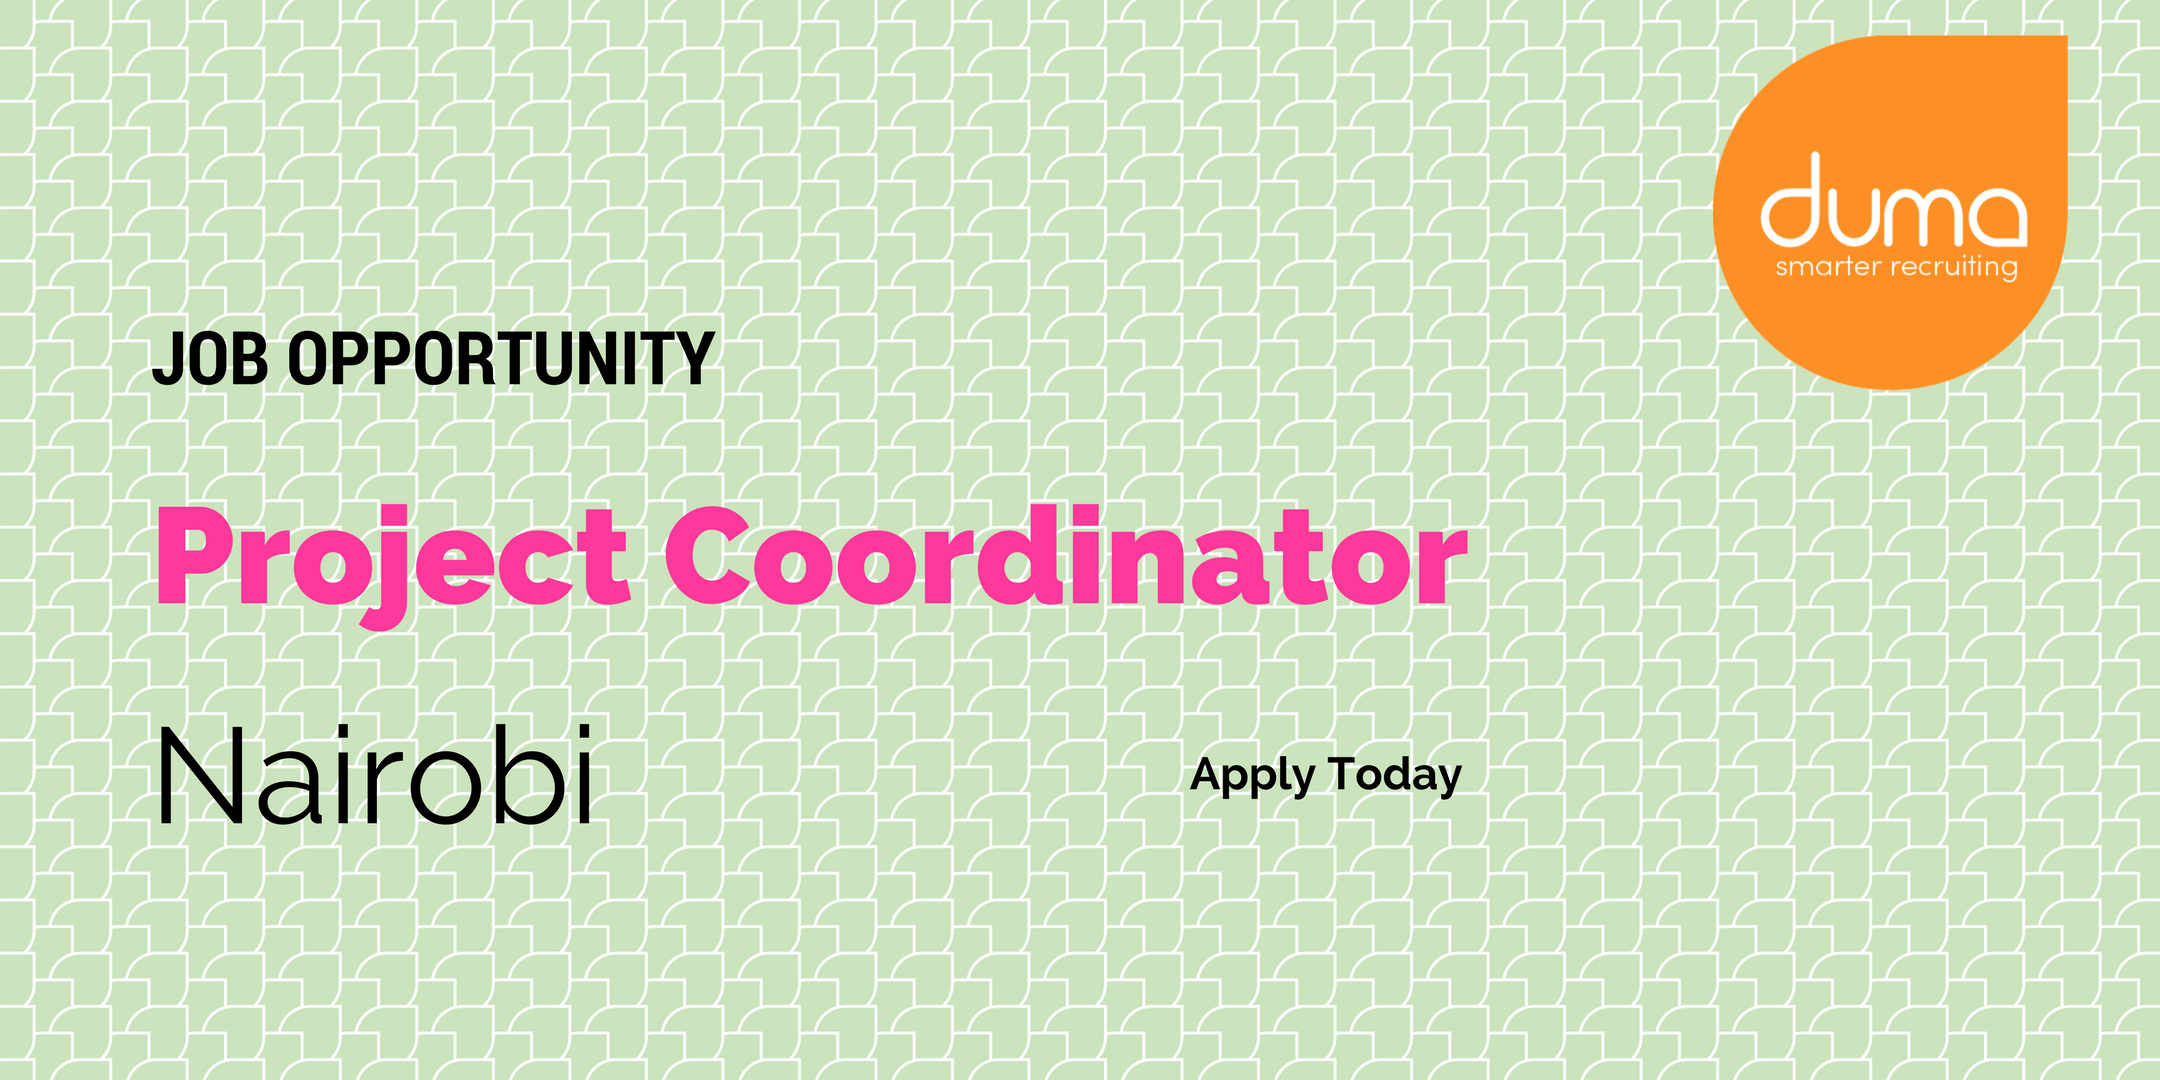 Applications for project coordinator job vacancy in Nairobi